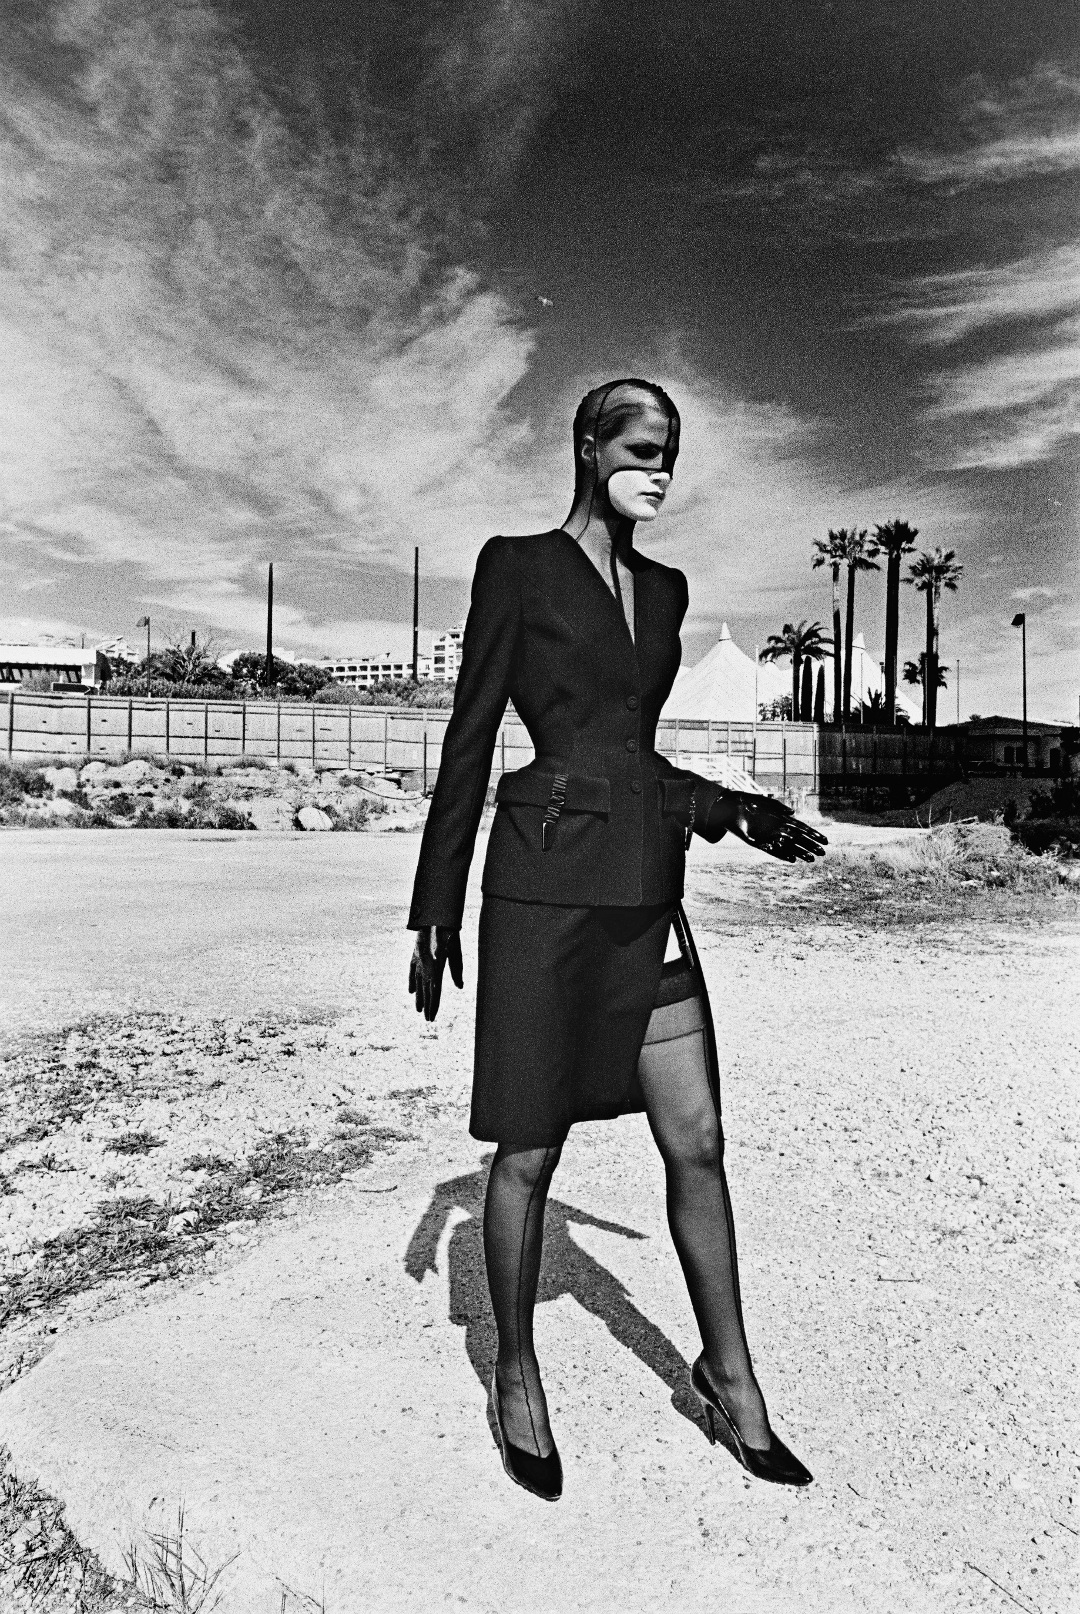 Helmut Newton, photo shoot for the catalogue of the collection Lingerie Revisited, Monaco, 1998. Photo: © The Helmut Newton Estate. Outfit: Thierry Mugler, Lingerie Revisited collection, prêt-à- porter fall/winter 1998–1999.